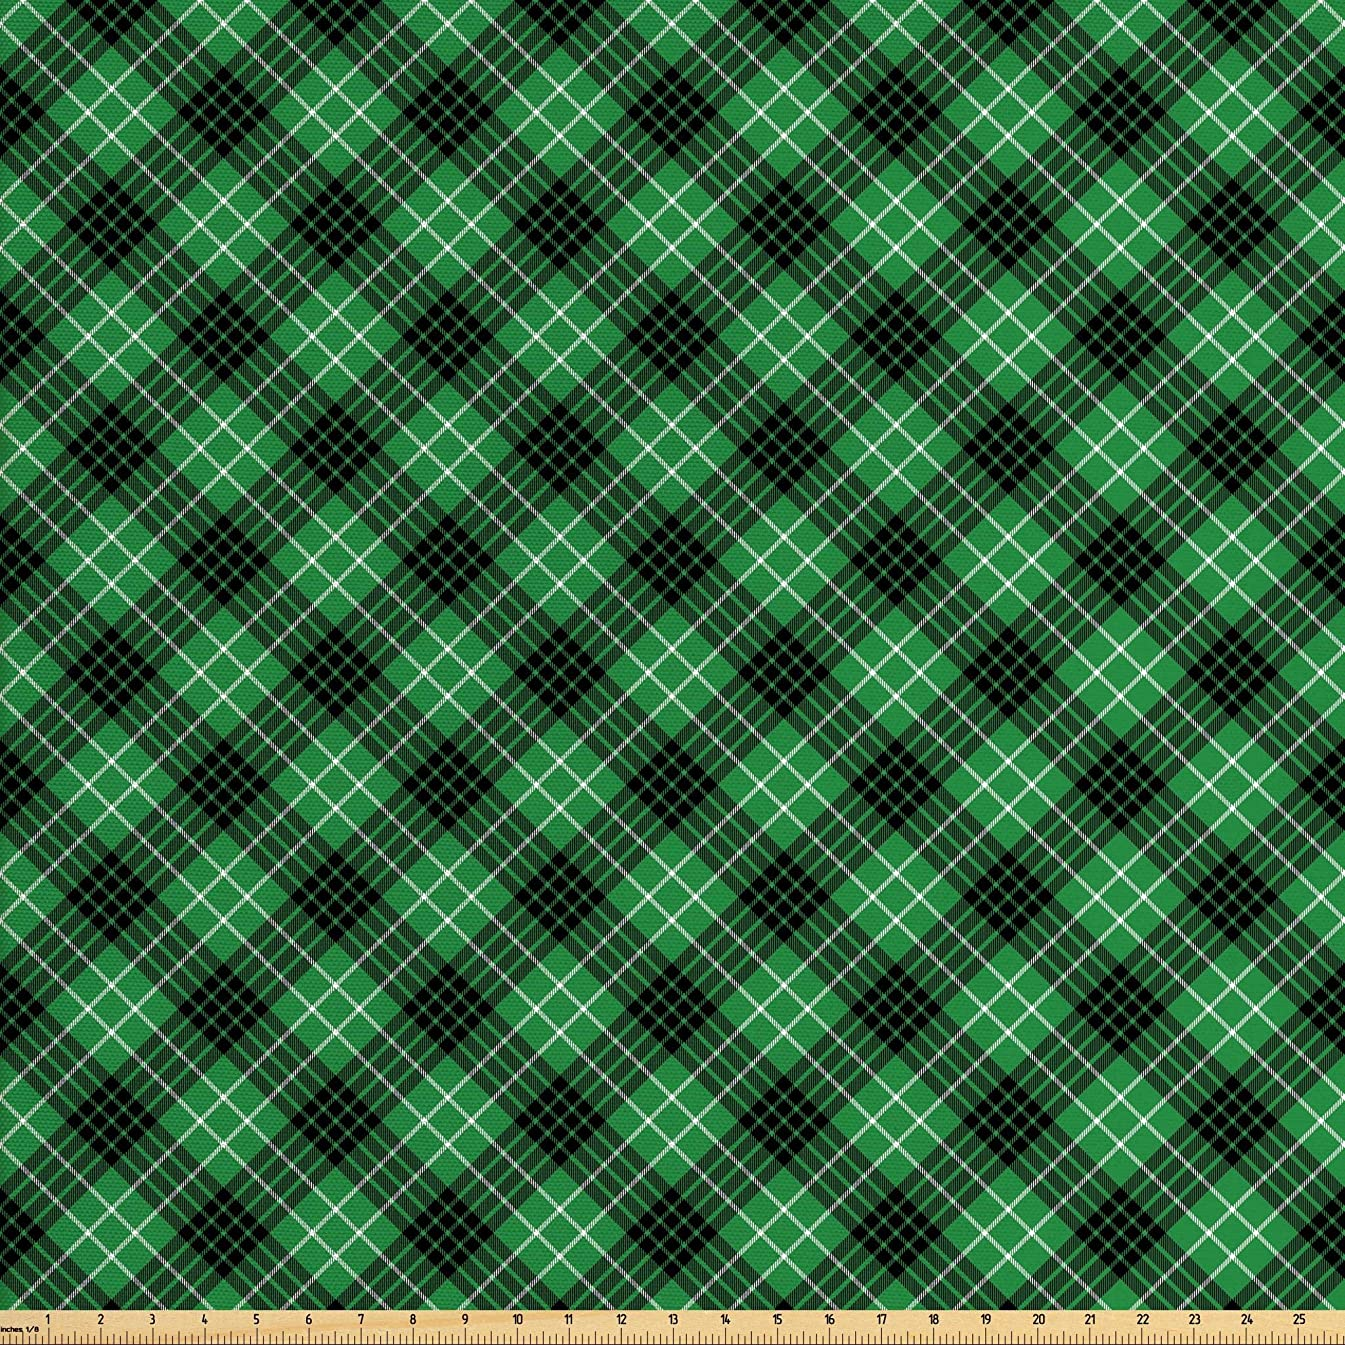 Ambesonne Plaid Fabric by The Yard, Diagonal Tartan Vibrant Green Color Geometrical Design with Stripes and Checks, Decorative Fabric for Upholstery and Home Accents, 1 Yard, Green Black White